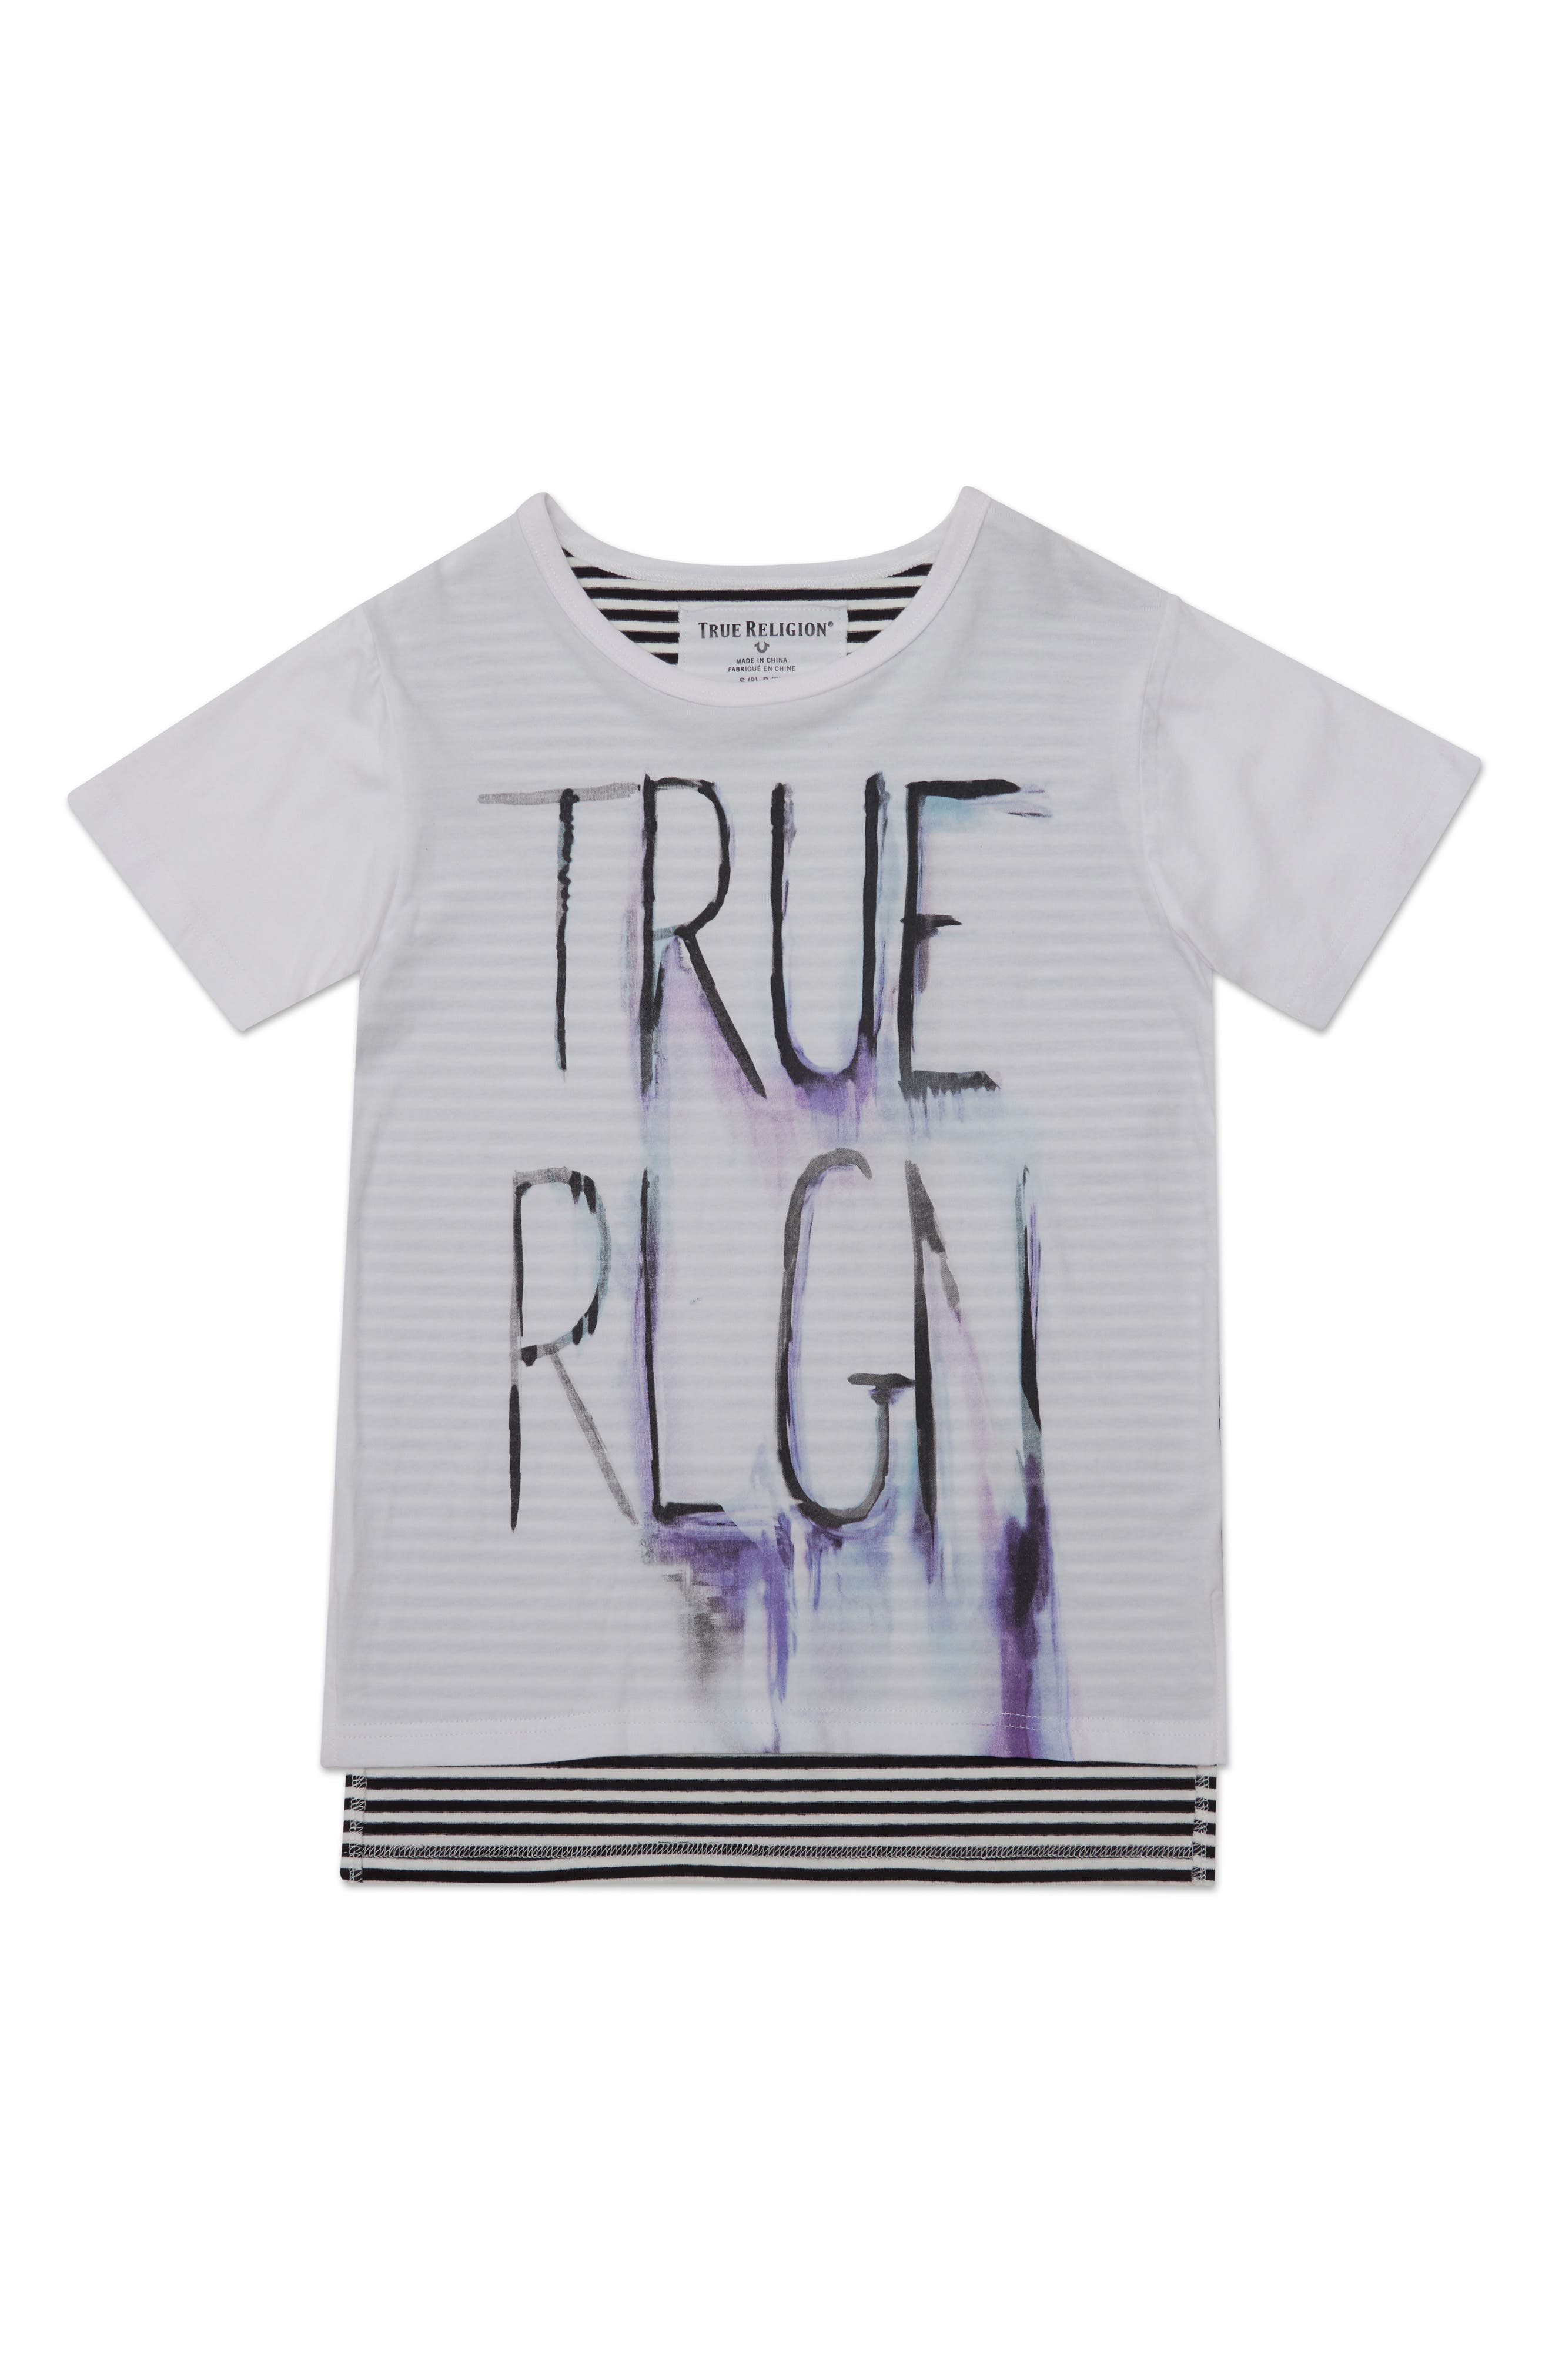 Alternate Image 1 Selected - True Religion Brand Jeans Sketch Graphic T-Shirt (Toddler Boys & Little Boys)